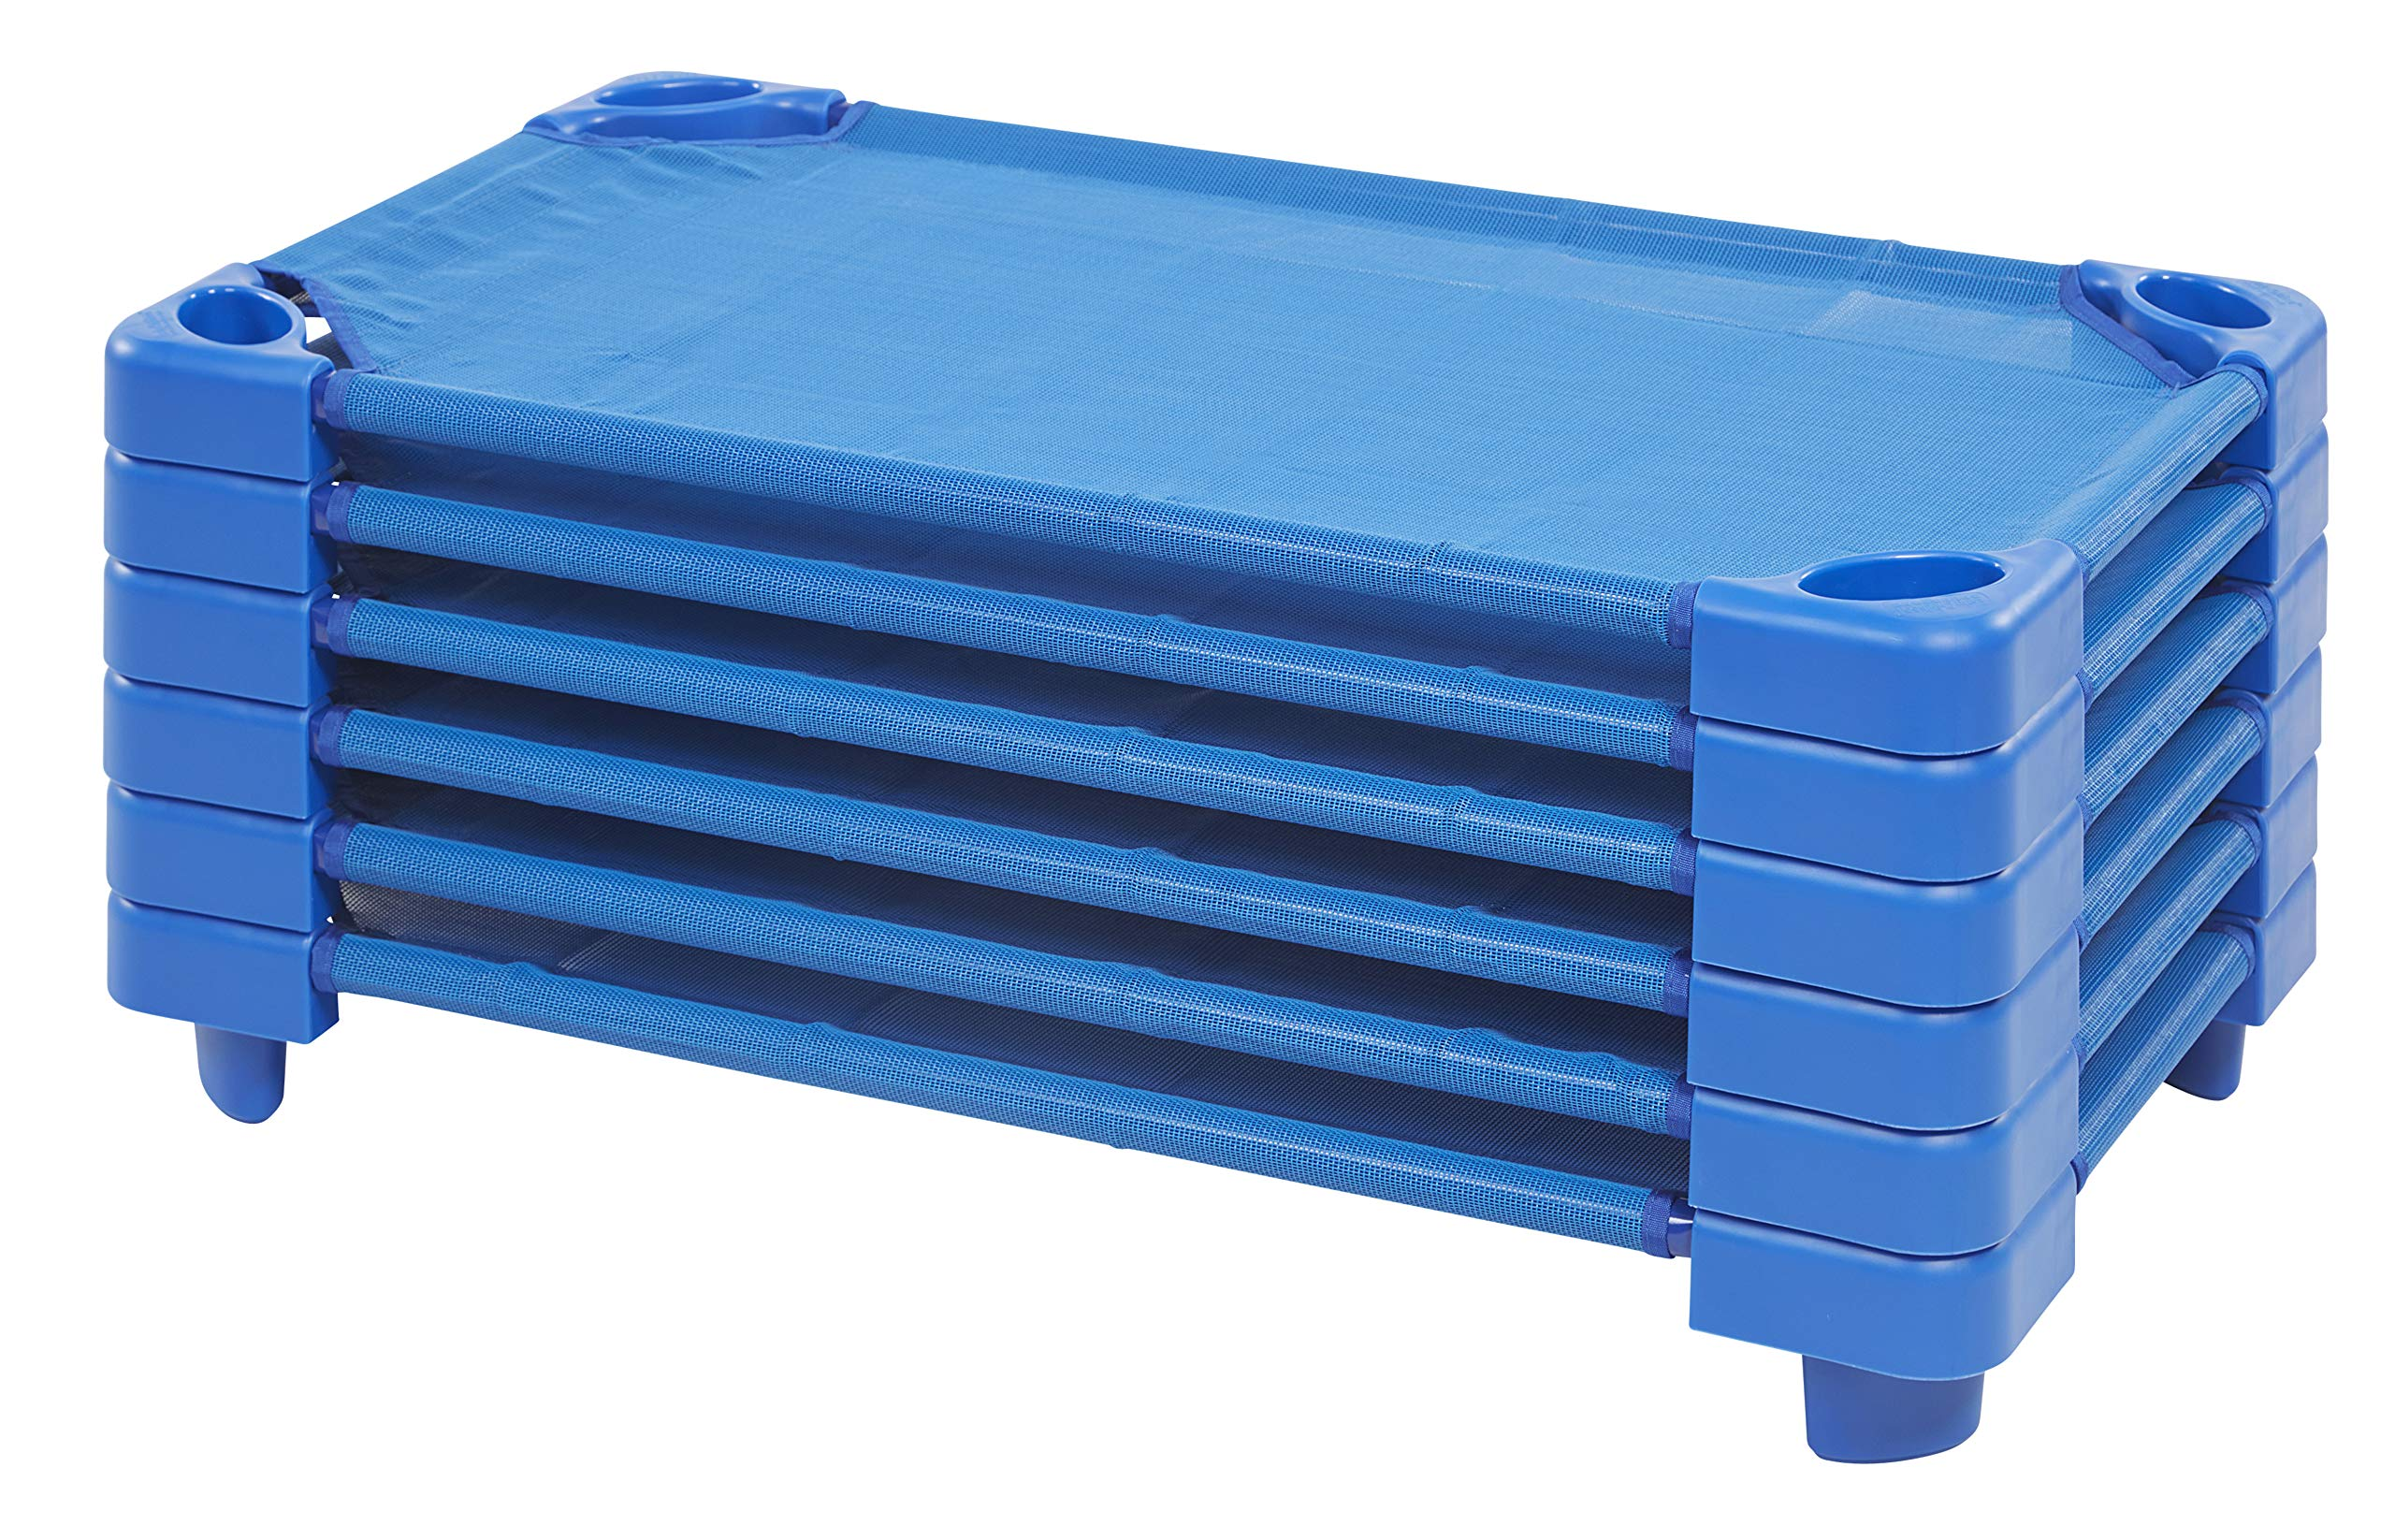 ECR4Kids Toddler Naptime Cot, Stackable Daycare Sleeping Cot for Kids, 40'' L x 23'' W, Ready-to-Assemble, Blue (Set of 6) by ECR4Kids